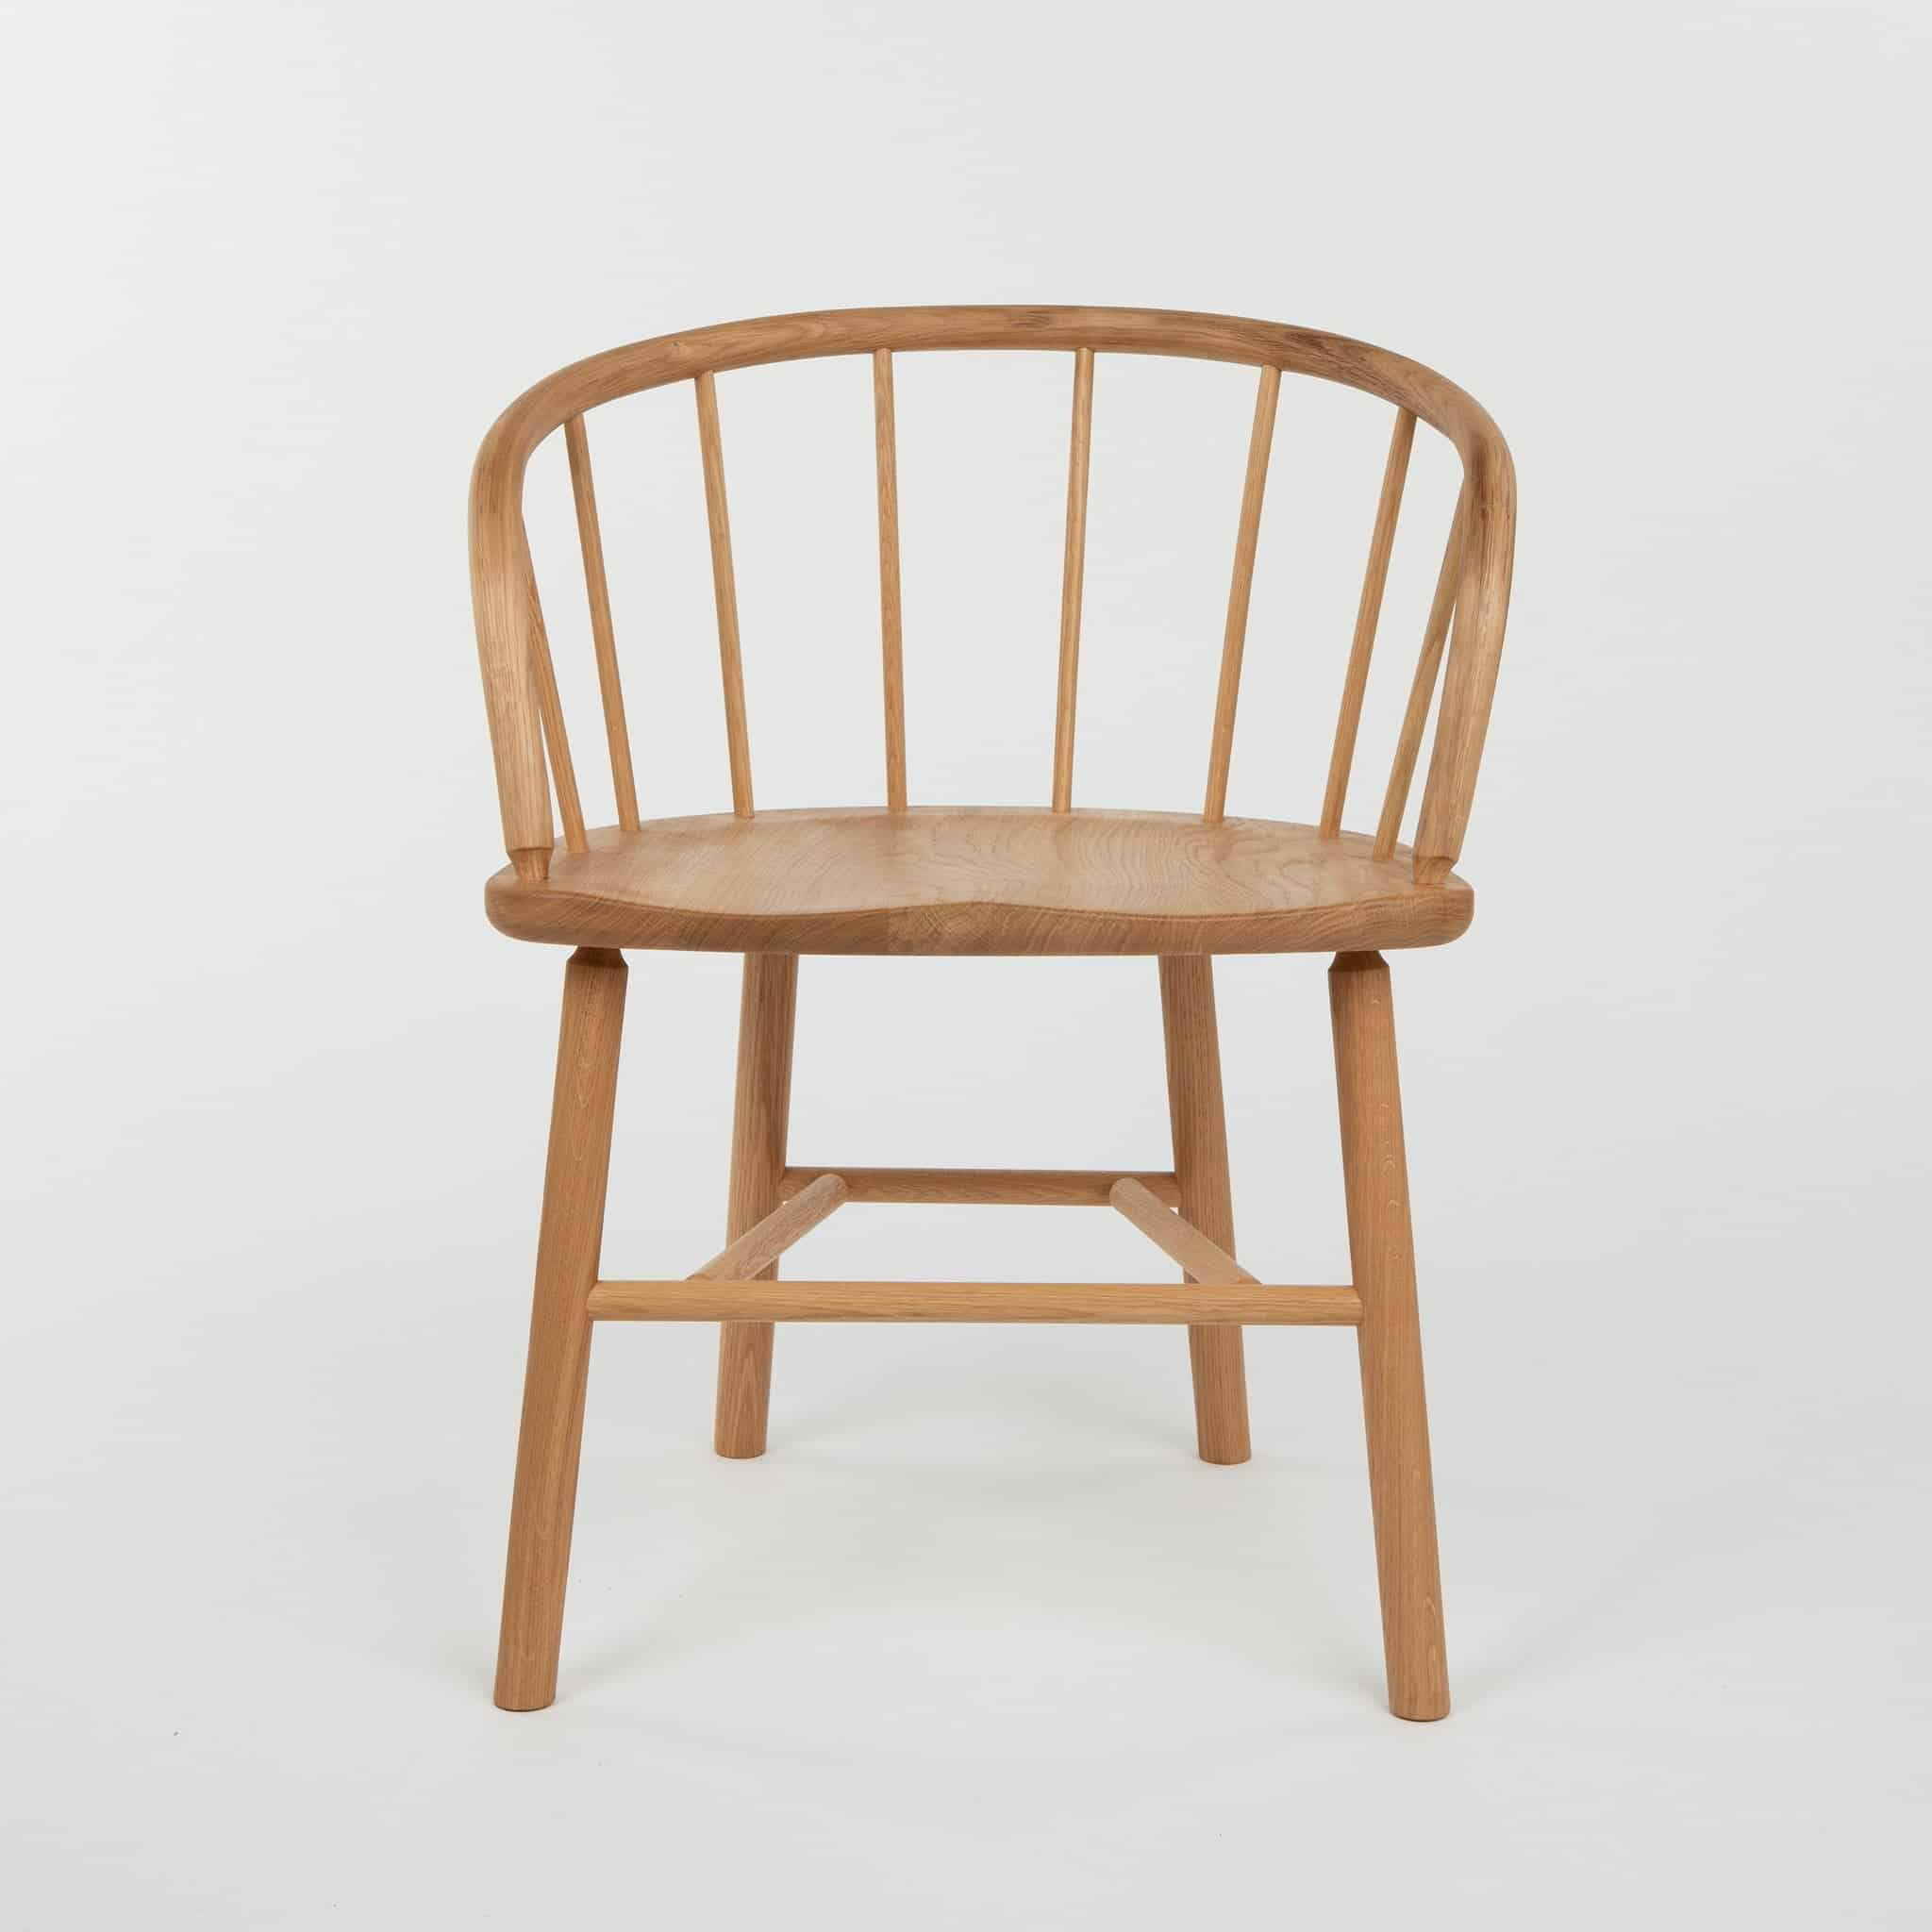 Oak Windsor-style chair by Another Country